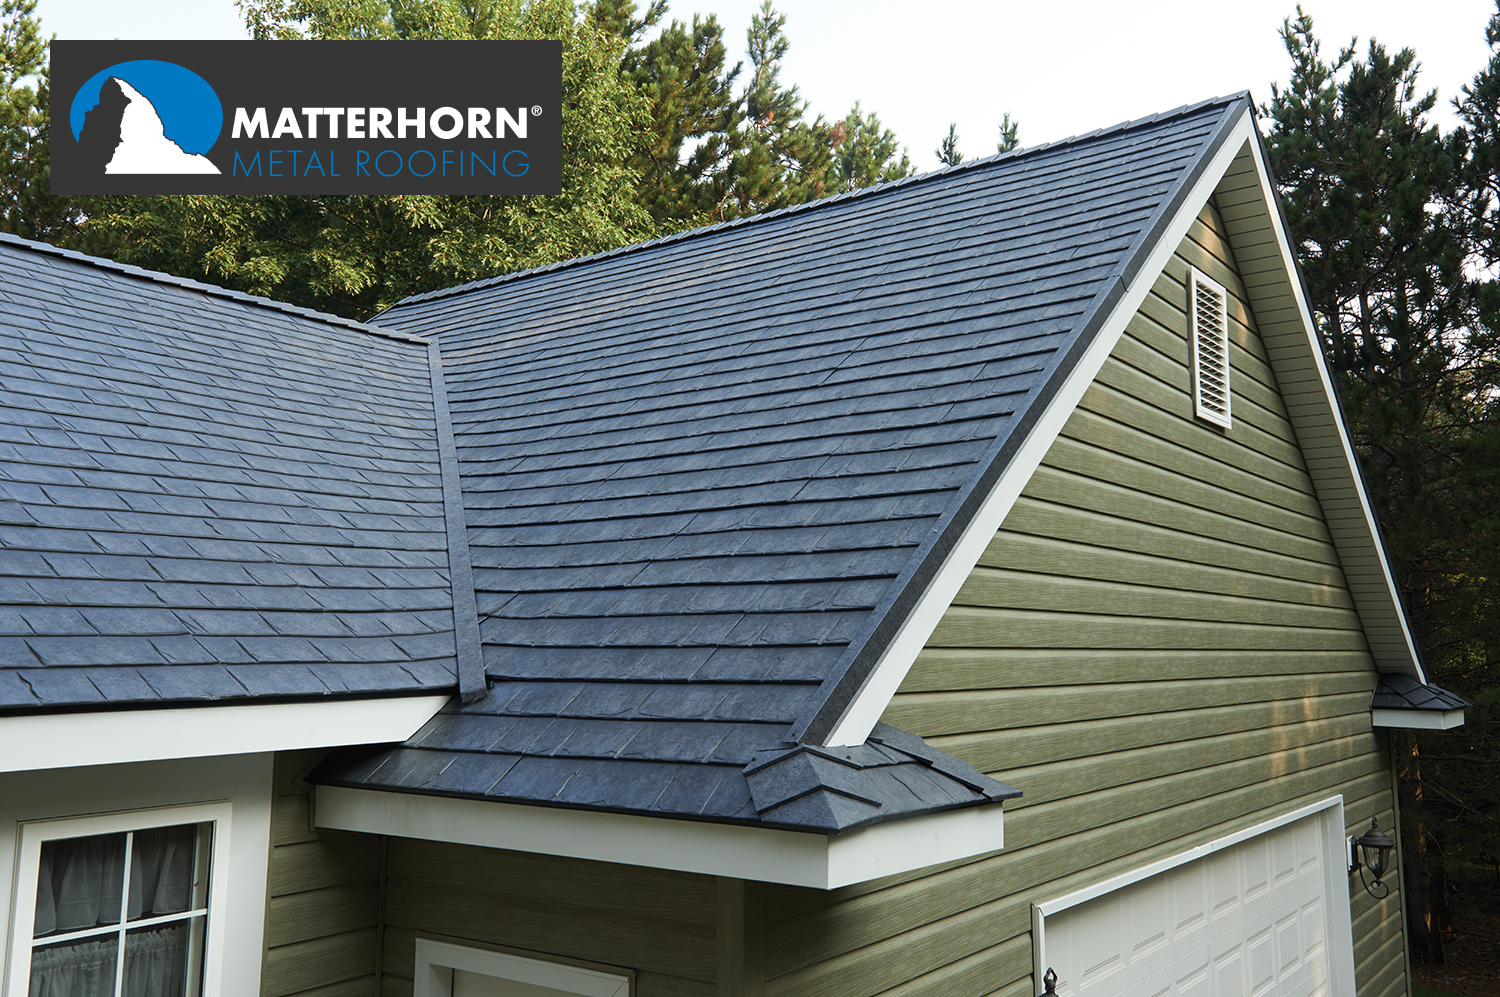 Steel Roofing Matterhorn Certainteed Herman S Supply Company